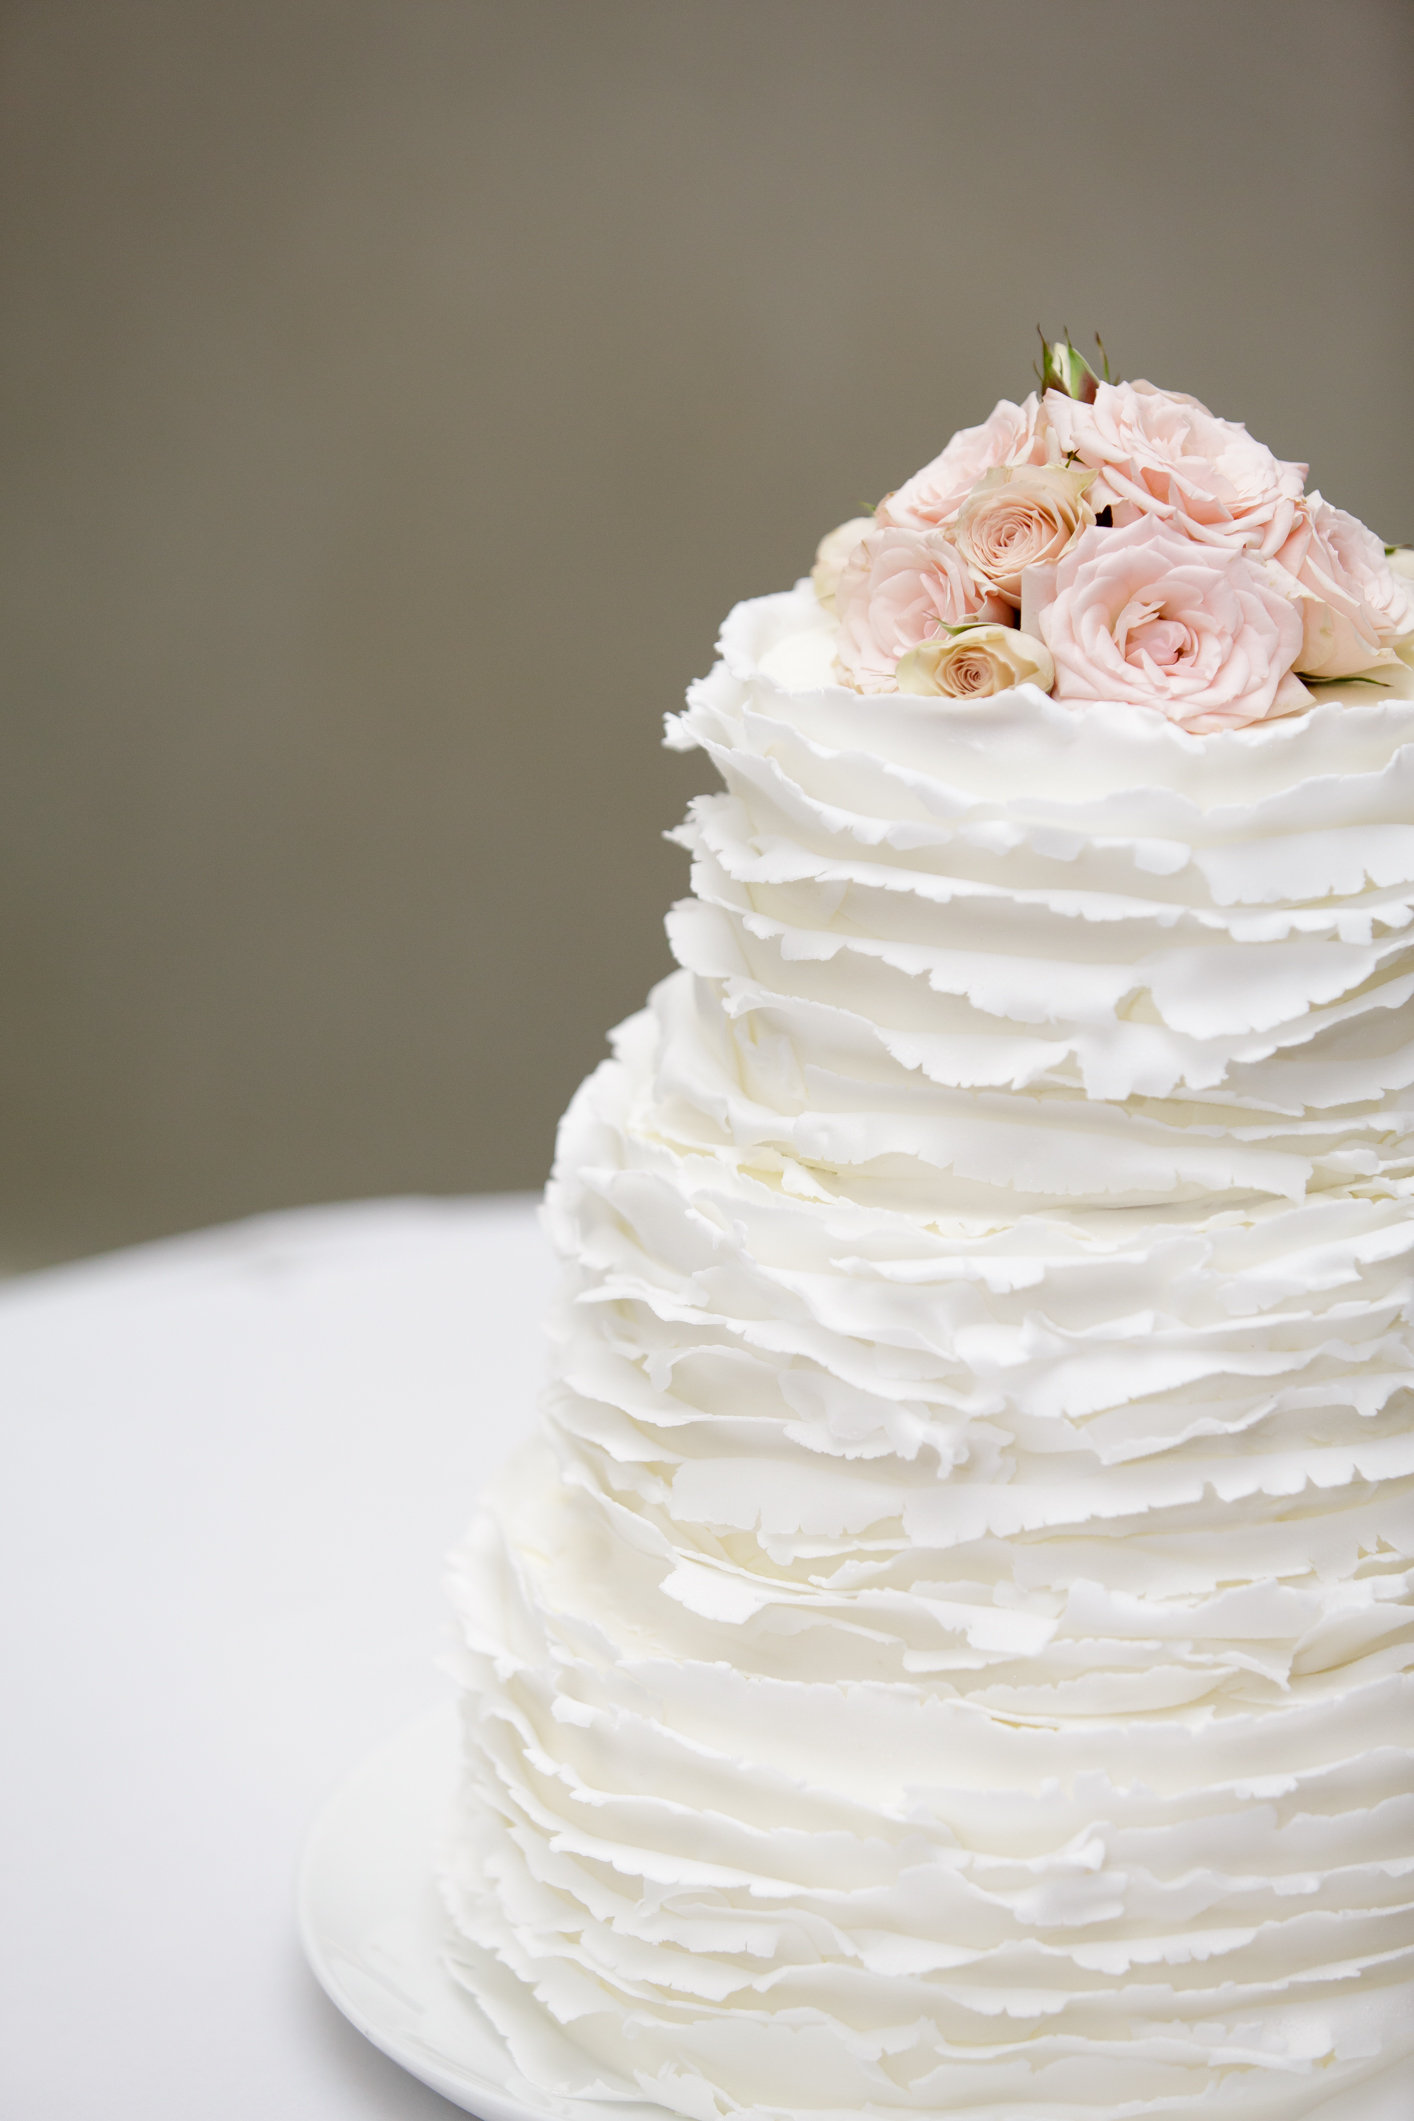 Hilton Sandestin Baker Creates Beach-inspired Destin FL Wedding Cakes